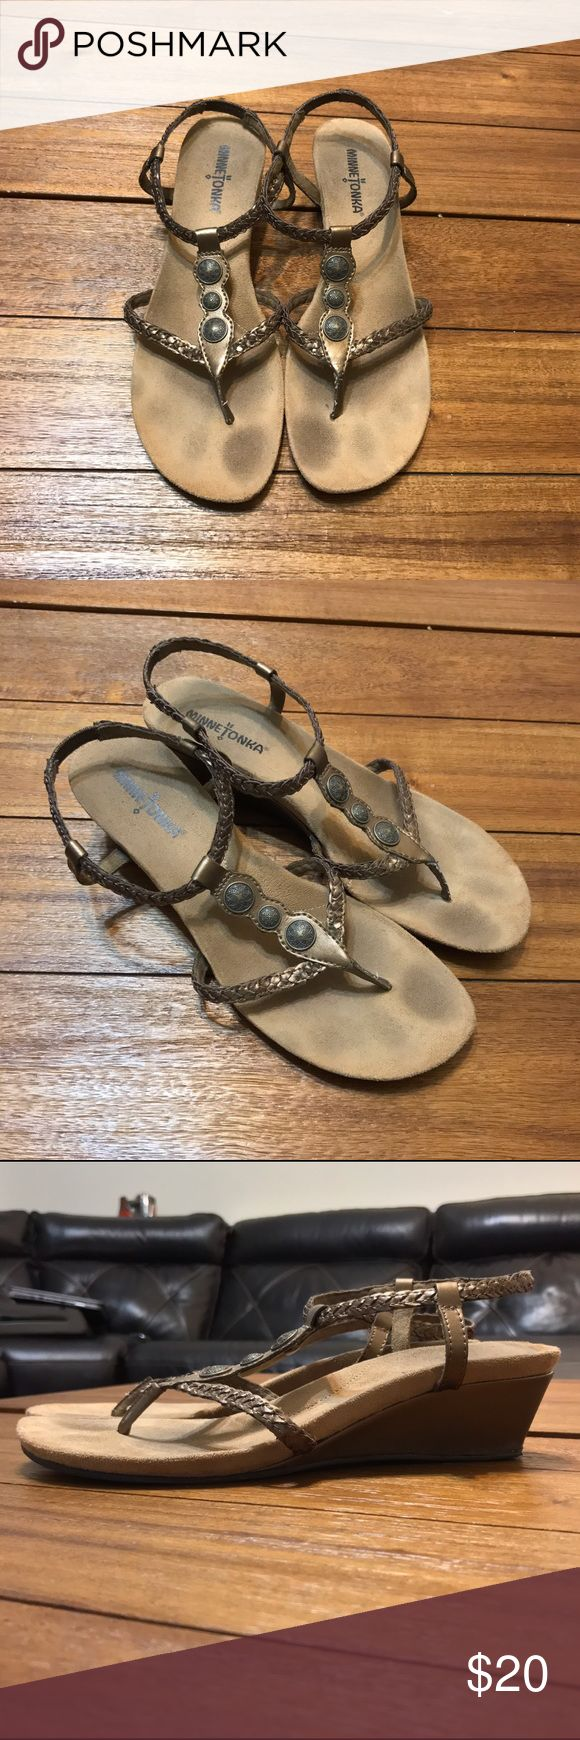 Minnetonka Metallic Strap Sandals size 8 Minnetonka metallic gold strappy sandals in a size 8. These sandals are in great condition with the exception of the slight tear of the bottom heels (as shown in the photo) Minnetonka Shoes Sandals